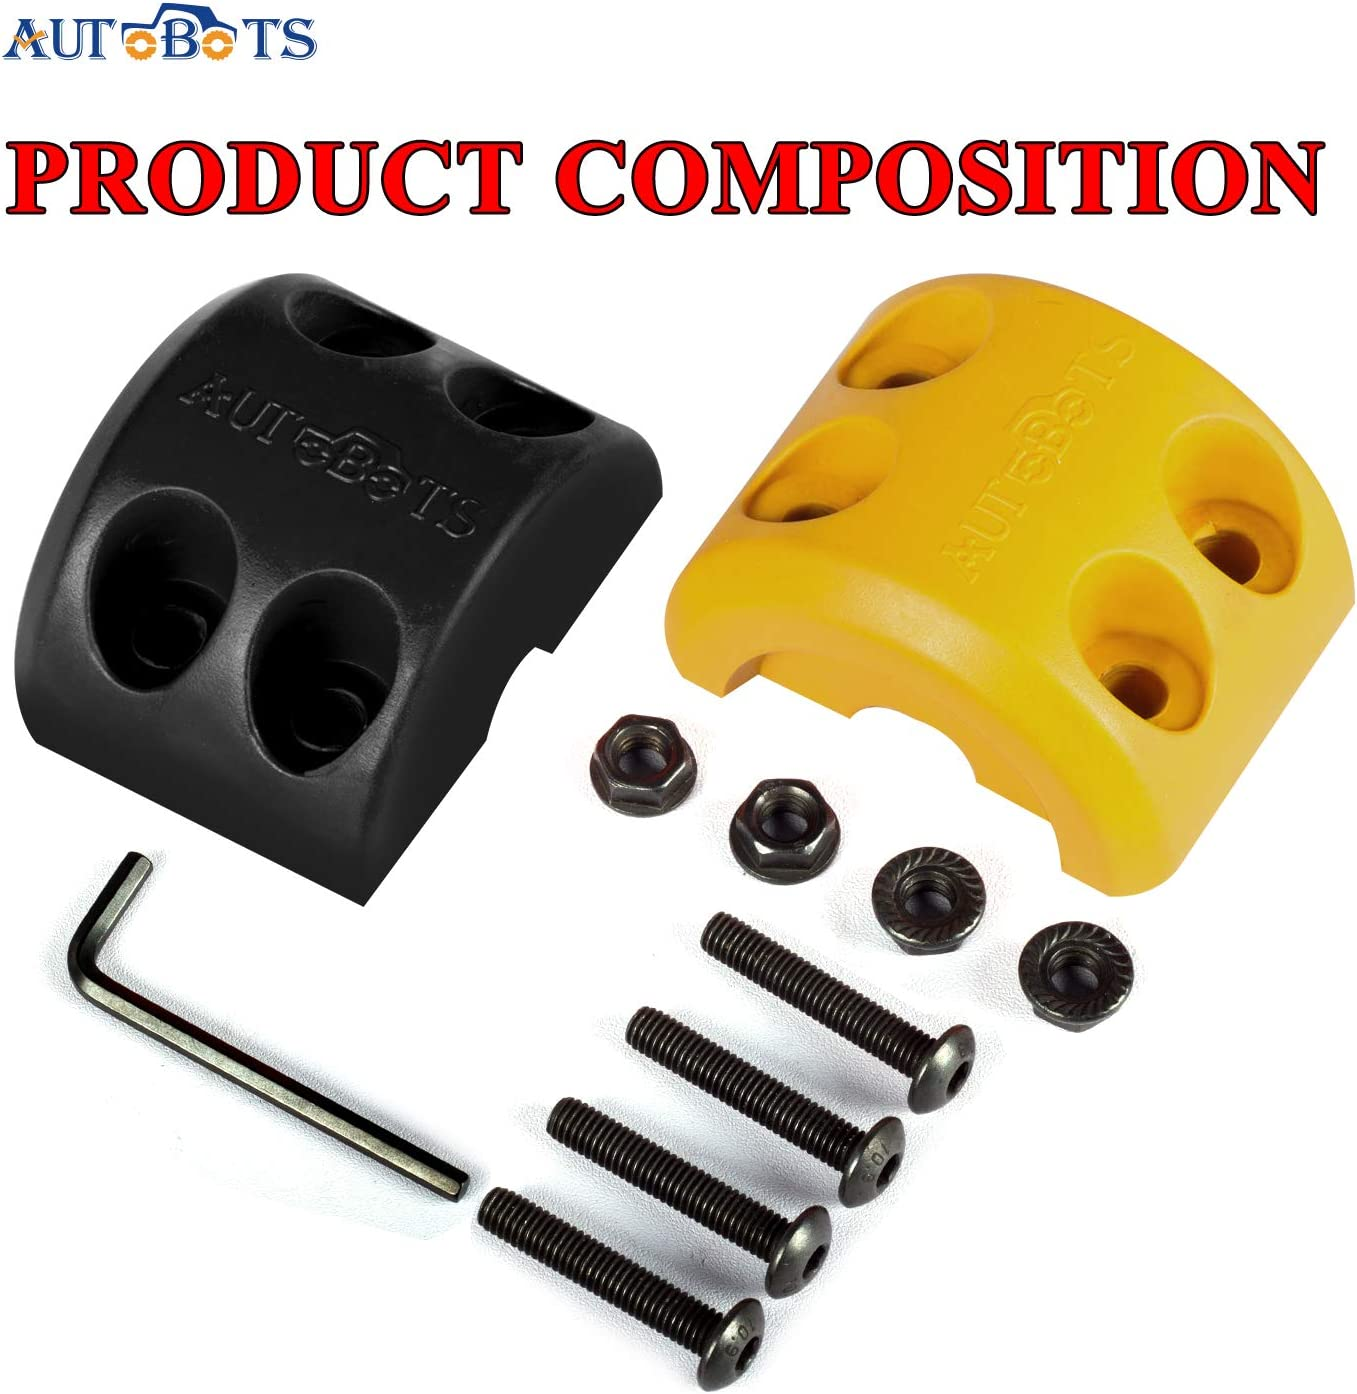 AUTOBOTS Rubber Winch Cable Hook Stopper 2Pcs Waterproof Durable Winch Rope Line Saver with Allen Wrench for ATV UTV Winches Red Black /…